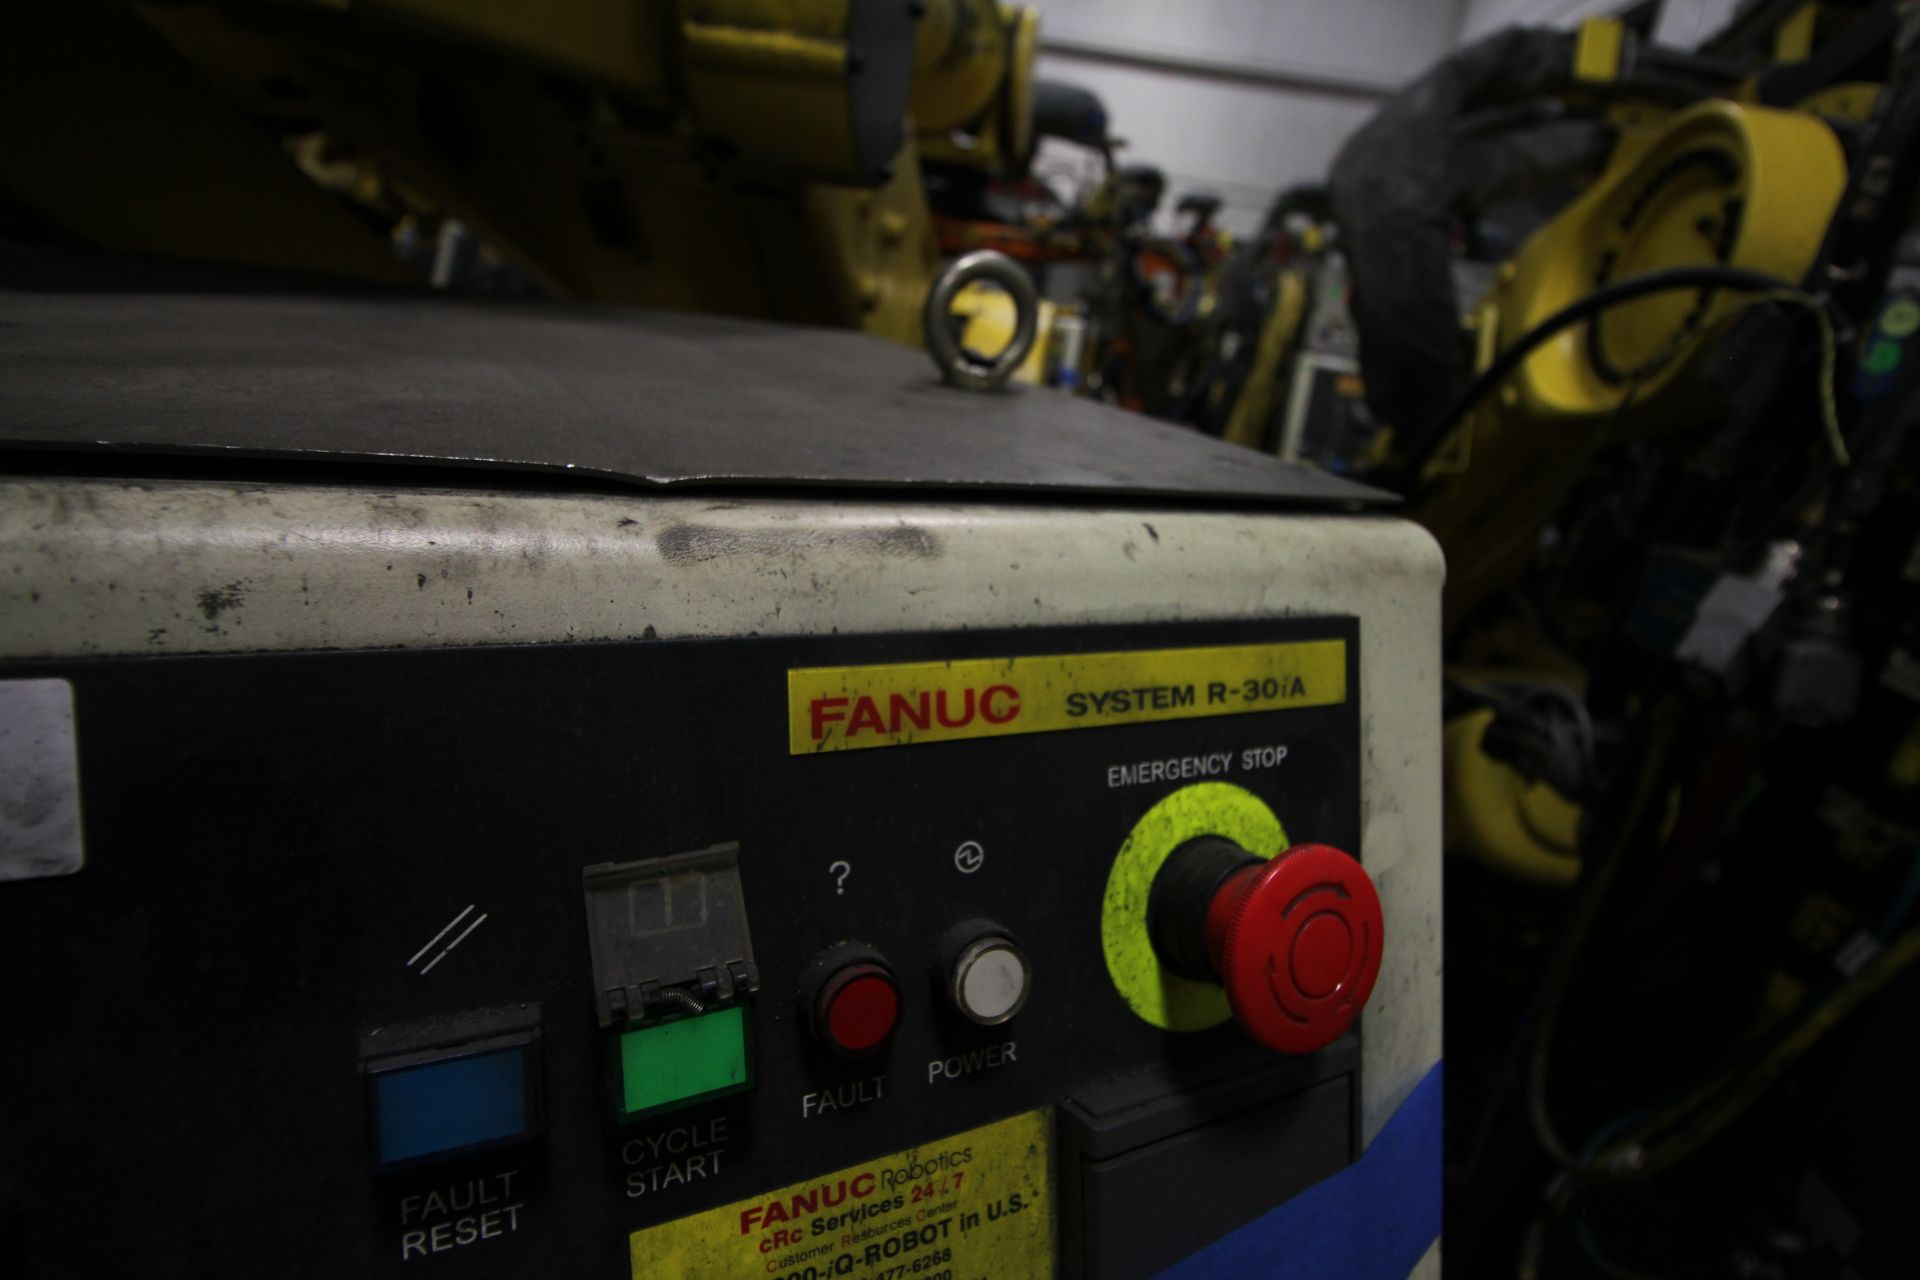 FANUC ROBOT M900iA/260L WITH R-30iA CONTROL, CABLES & TEACH PENDANT, SN 97368, YEAR 2009 - Image 7 of 9